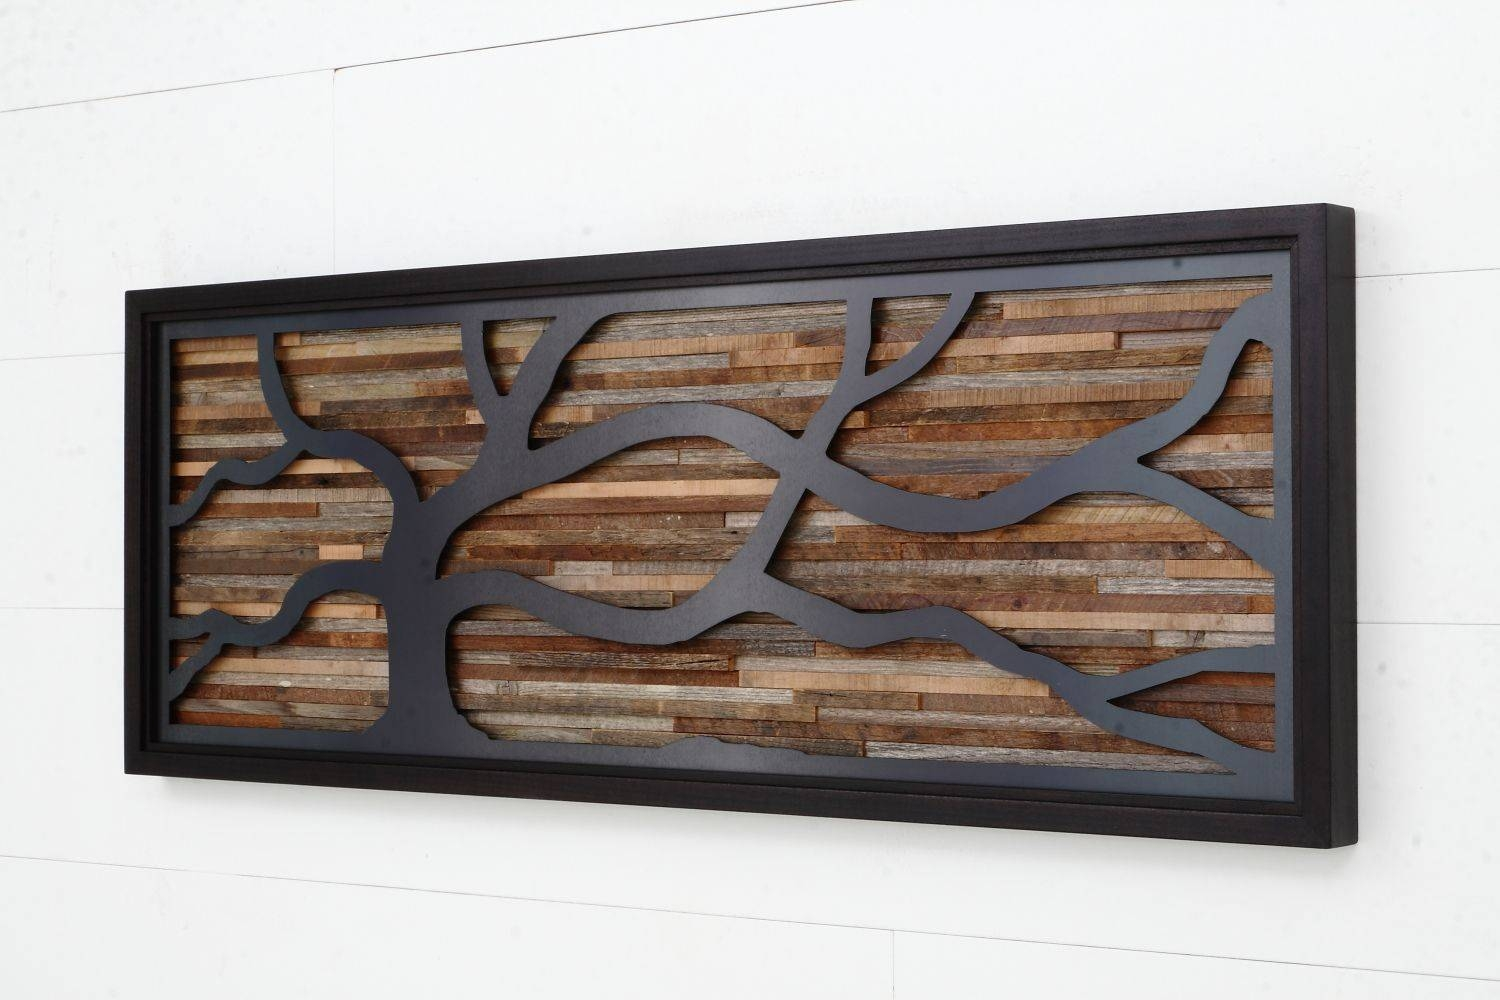 Hand Crafted Wood Wall Art Made Of Old Barnwood And Natural Black Throughout Newest Natural Wood Wall Art (View 2 of 20)